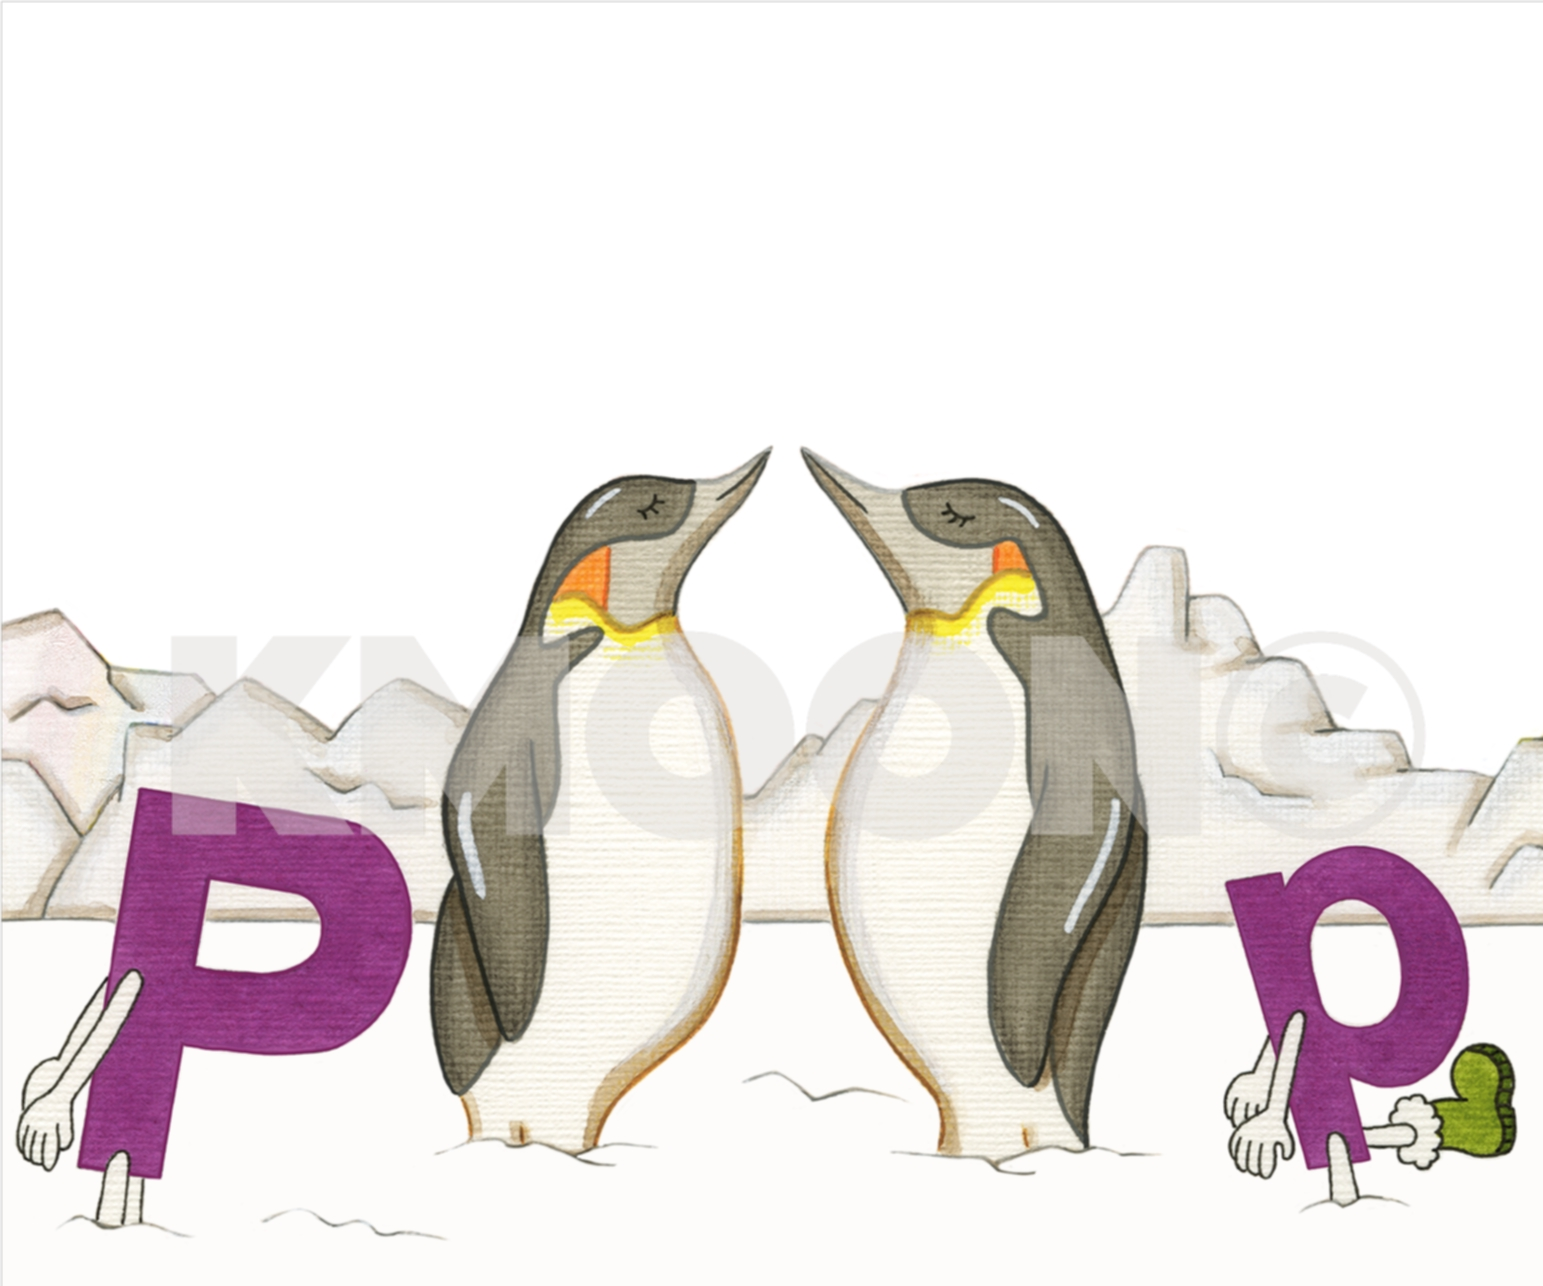 Pp is for ... penguin